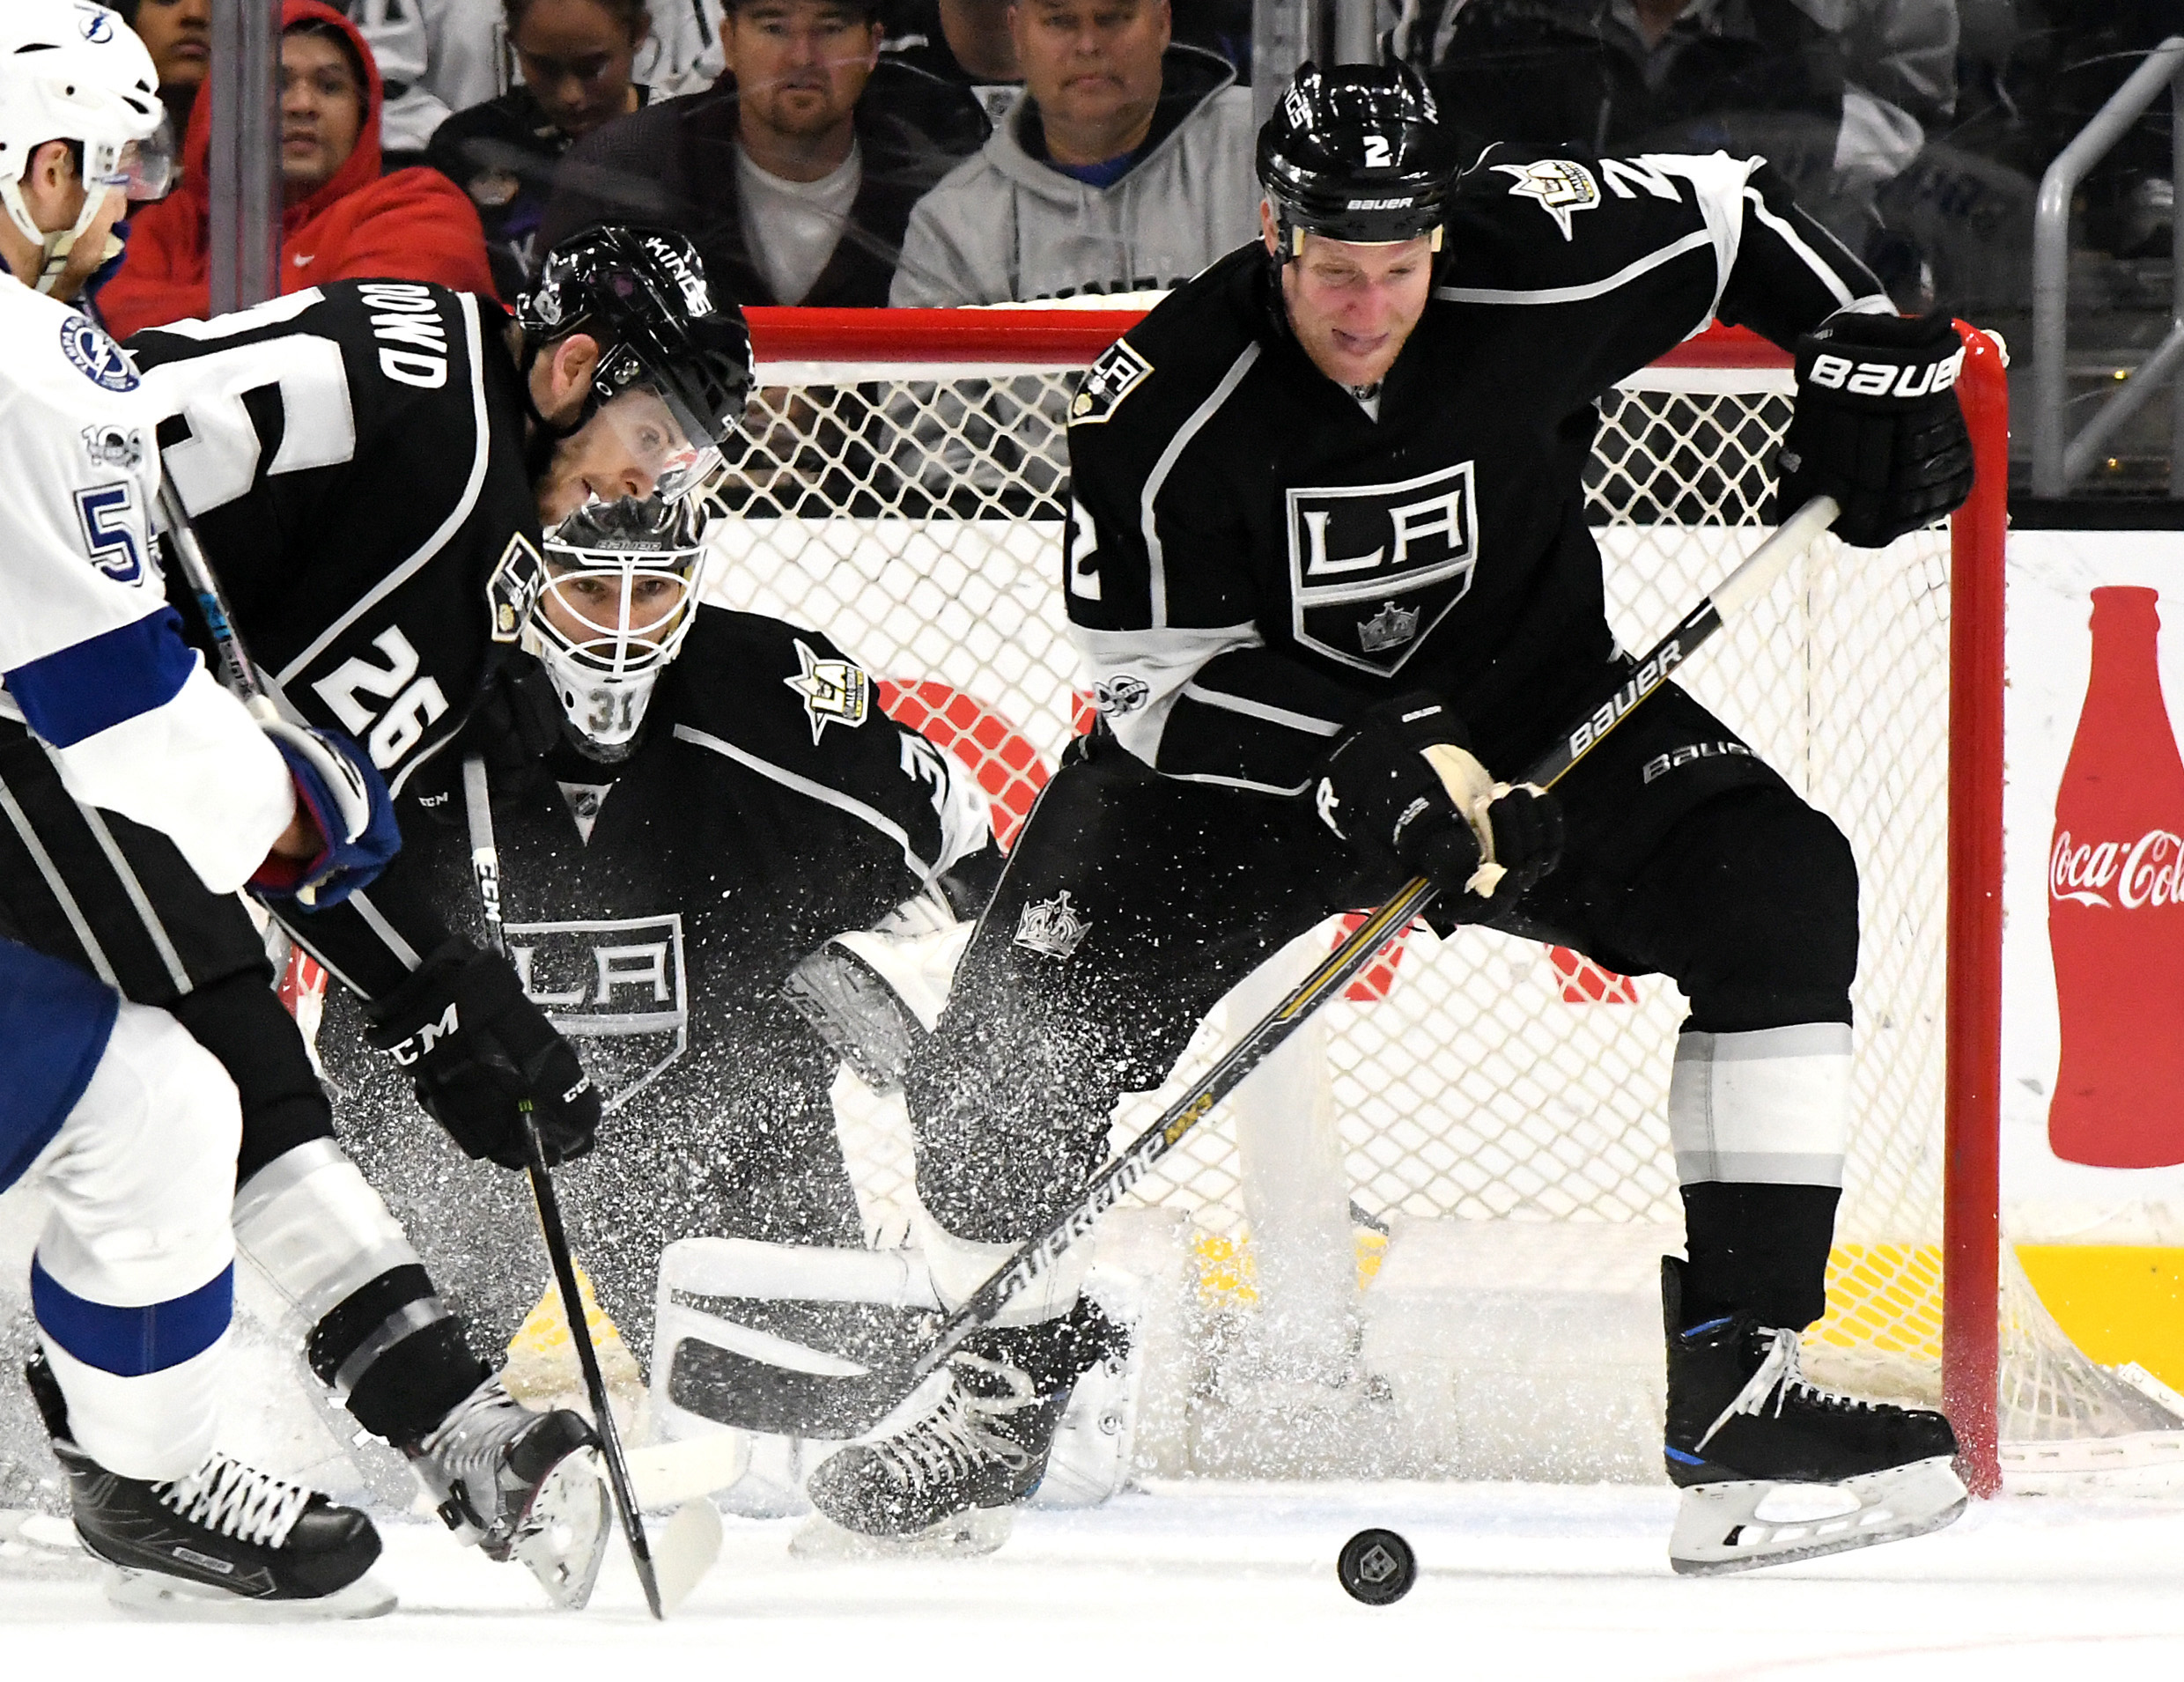 9813990-nhl-tampa-bay-lightning-at-los-angeles-kings